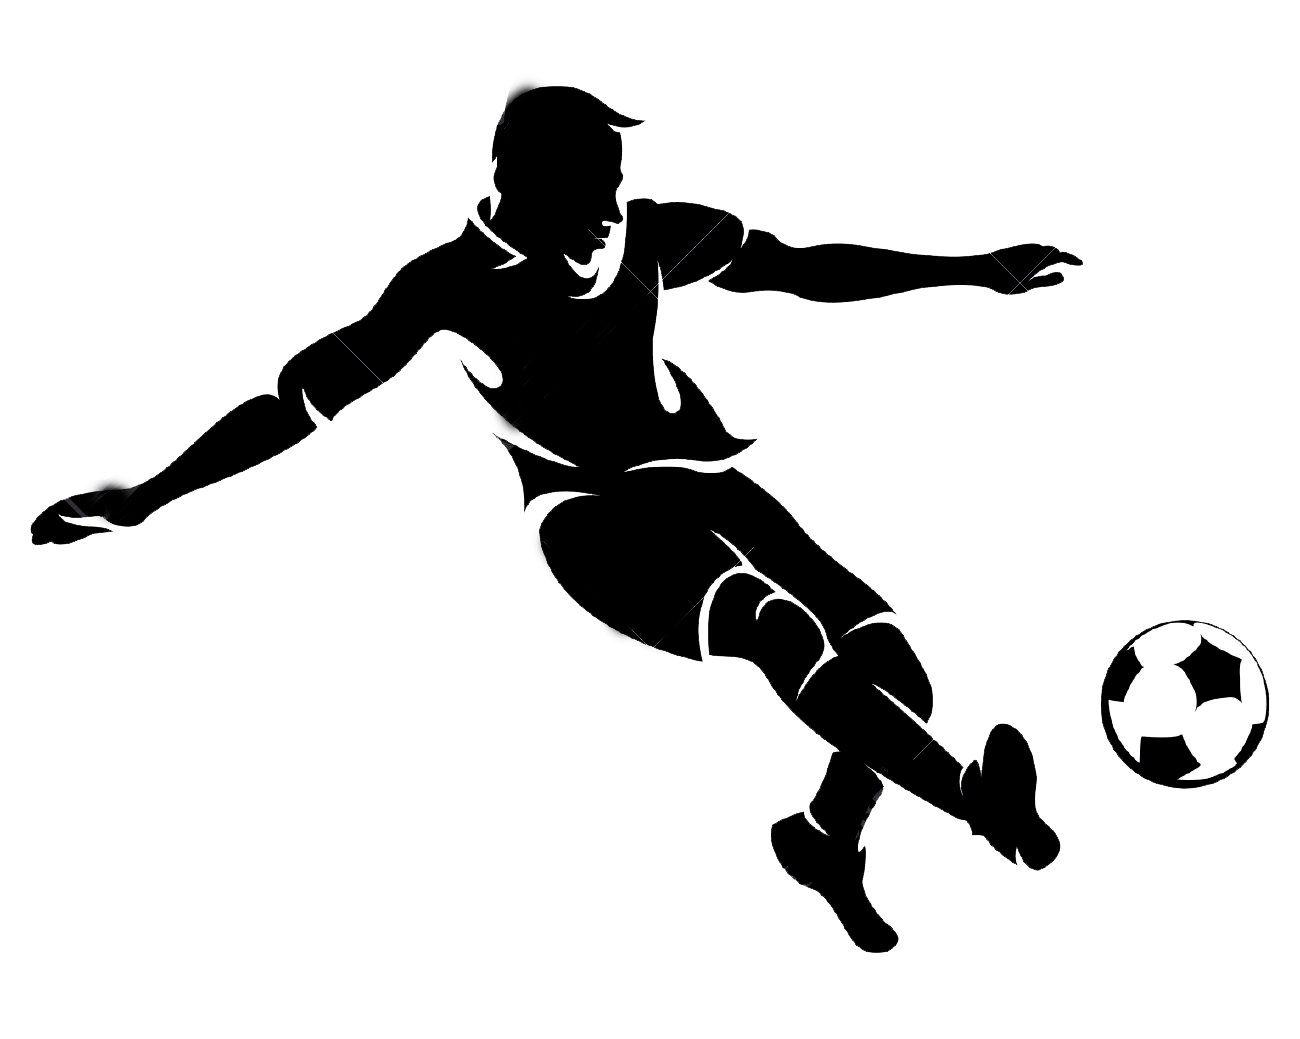 Clipart image football player png download 28+ Collection of Football Player Clipart Images | High quality ... png download